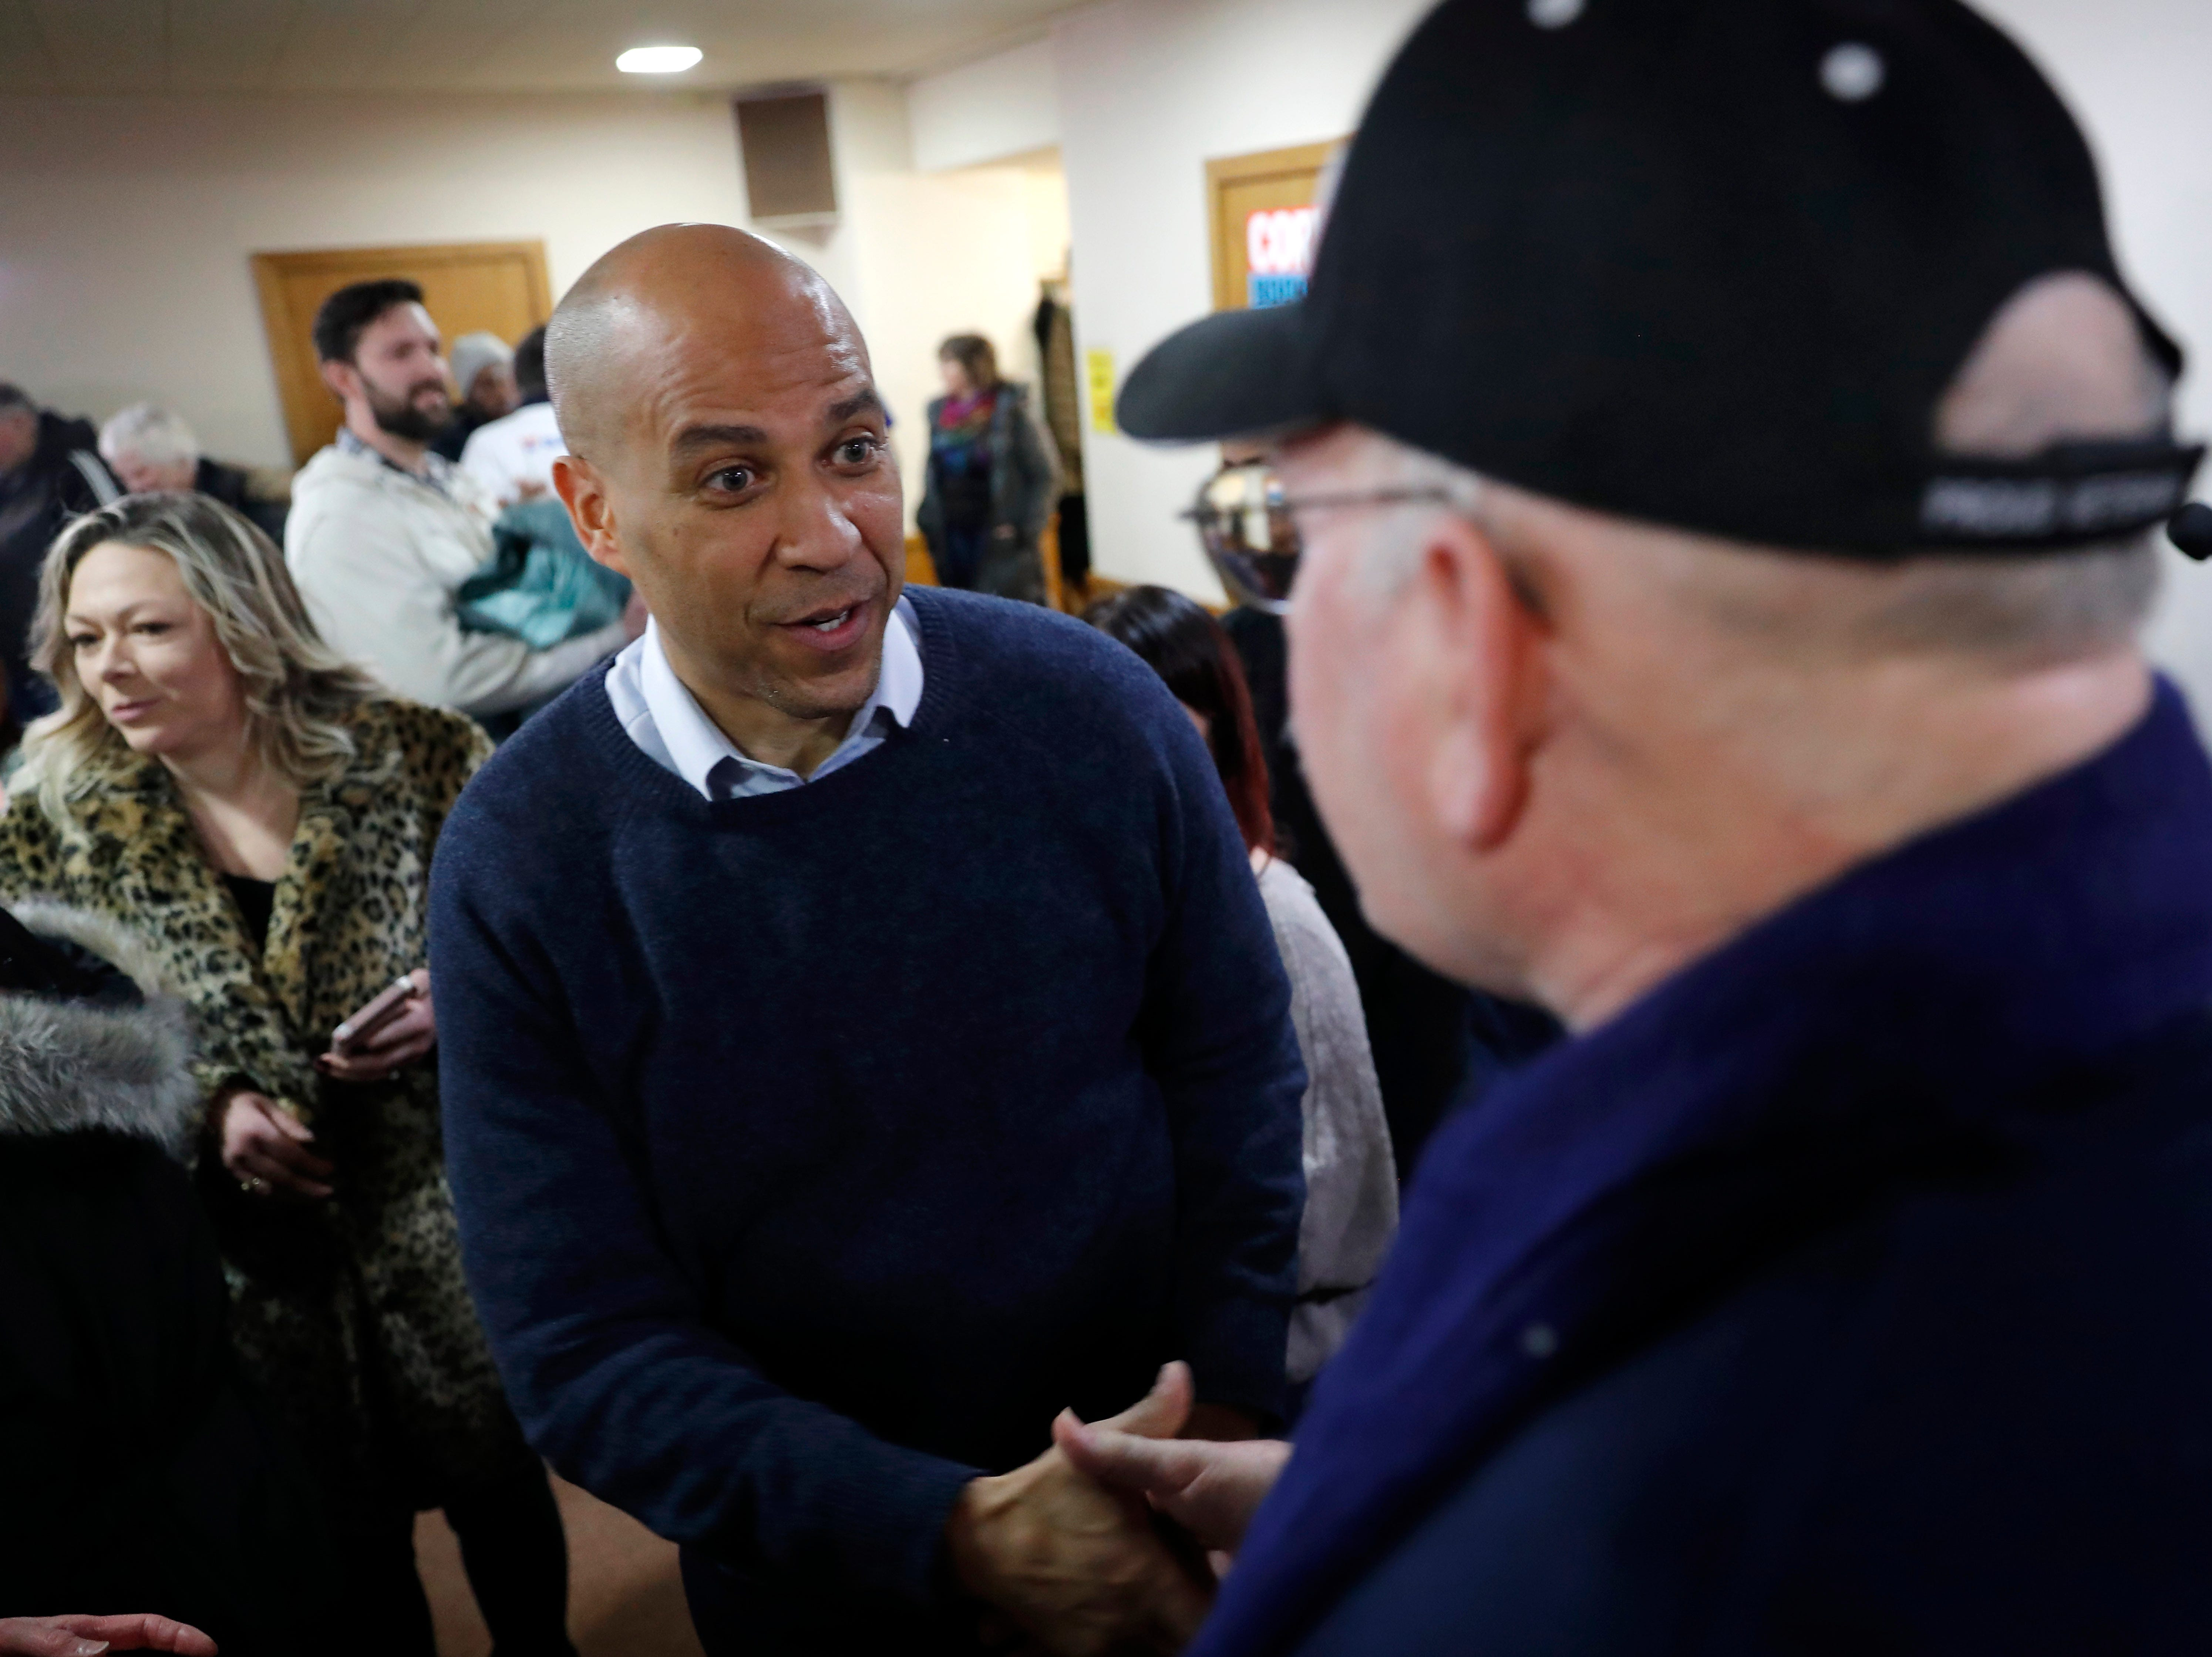 U.S. Sen. Cory Booker, D-N.J., speaks with Steven Howell, of Mason City, Iowa, right, during a meet and greet with local residents at the First Congregational United Church of Christ, Friday, Feb. 8, 2019, in Mason City, Iowa. (AP Photo/Charlie Neibergall)